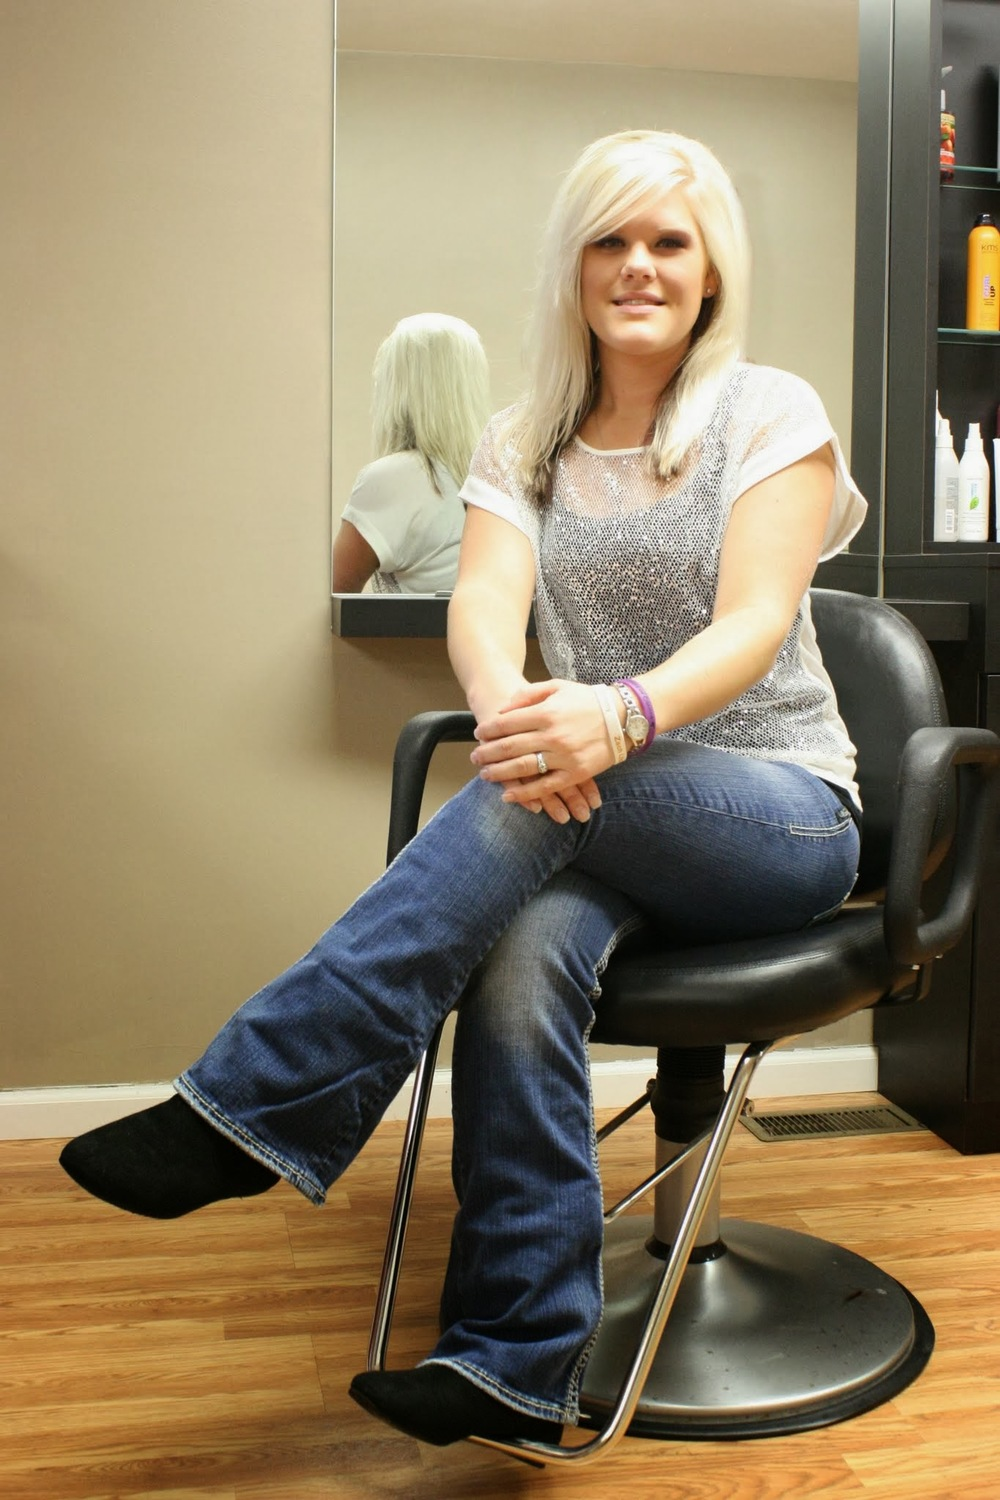 Emily  Stylist/Nail Tech  Emily has been with us 3 years. She offers a wide range of services from manicures & pedicures to cutting and coloring. She is available for appointments Wednesday 5pm-8pm or Saturdays 8am-1pm.